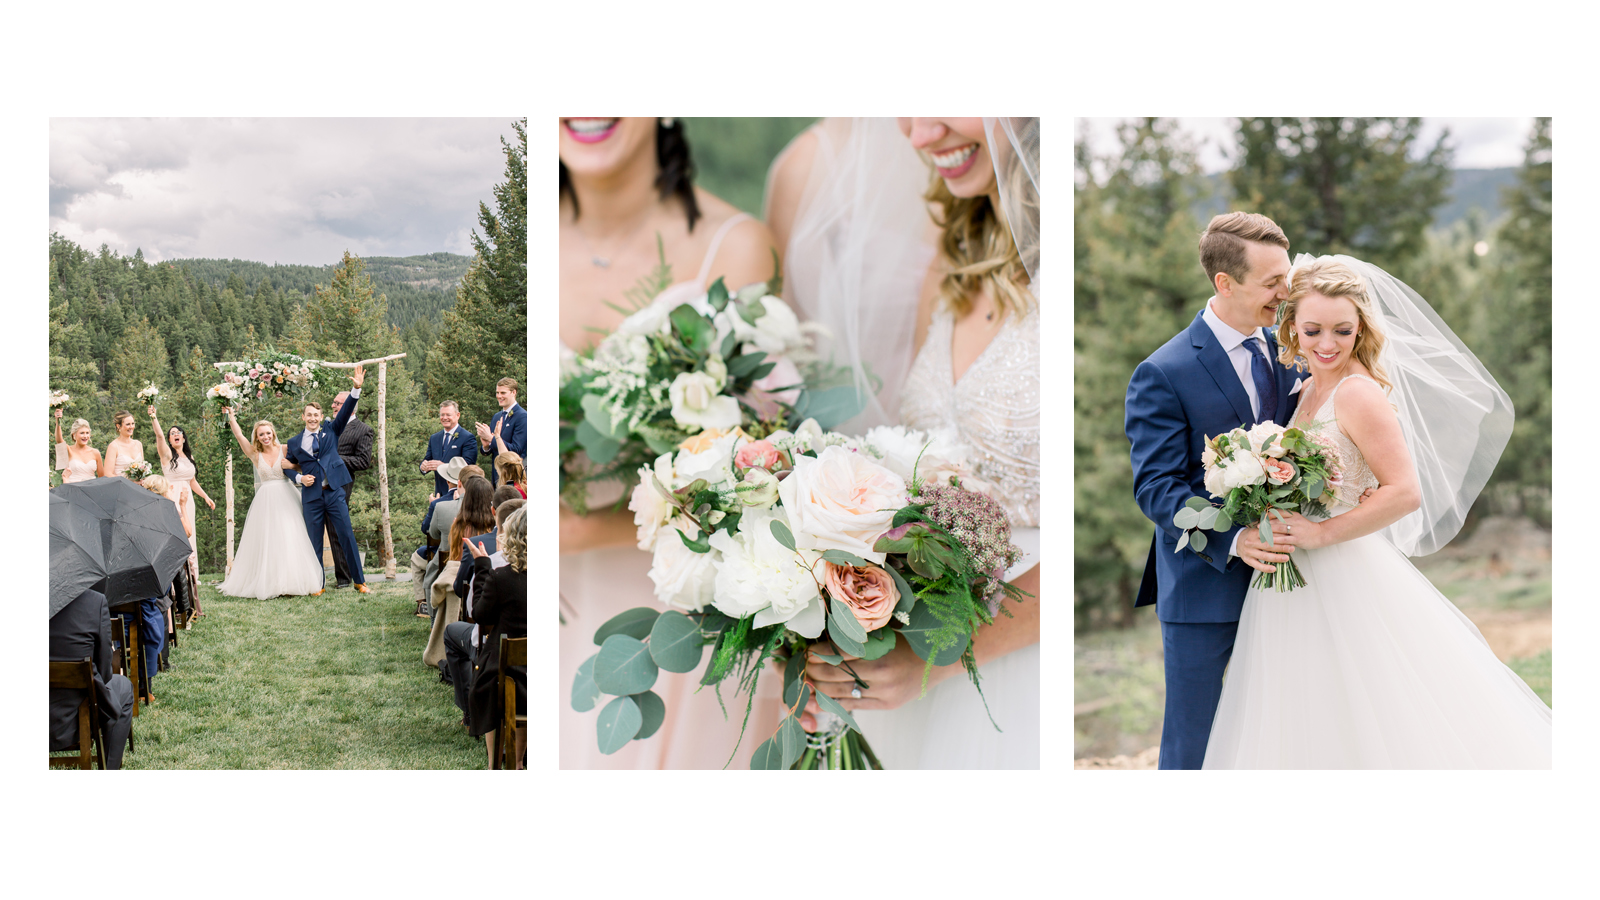 Michele with one L Photography Woodlands Colorado Wedding Photographer.jpg